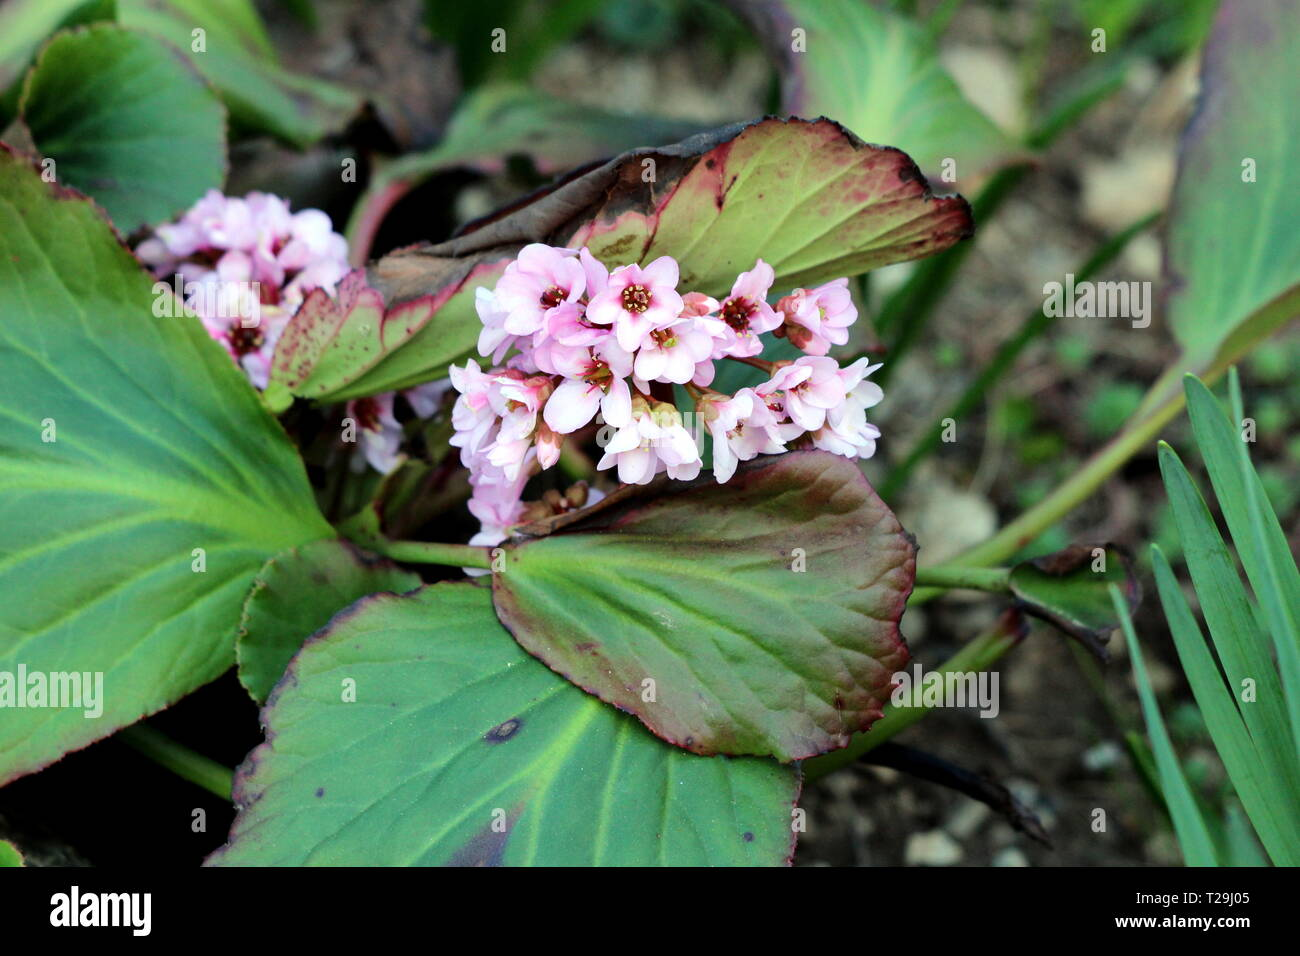 Bergenia Or Elephant Eared Saxifrage Or Elephants Ears Rhizomatous Evergreen Perennial Flowering Plant With Dense Bunch Of Light Pink Flowers Stock Photo Alamy